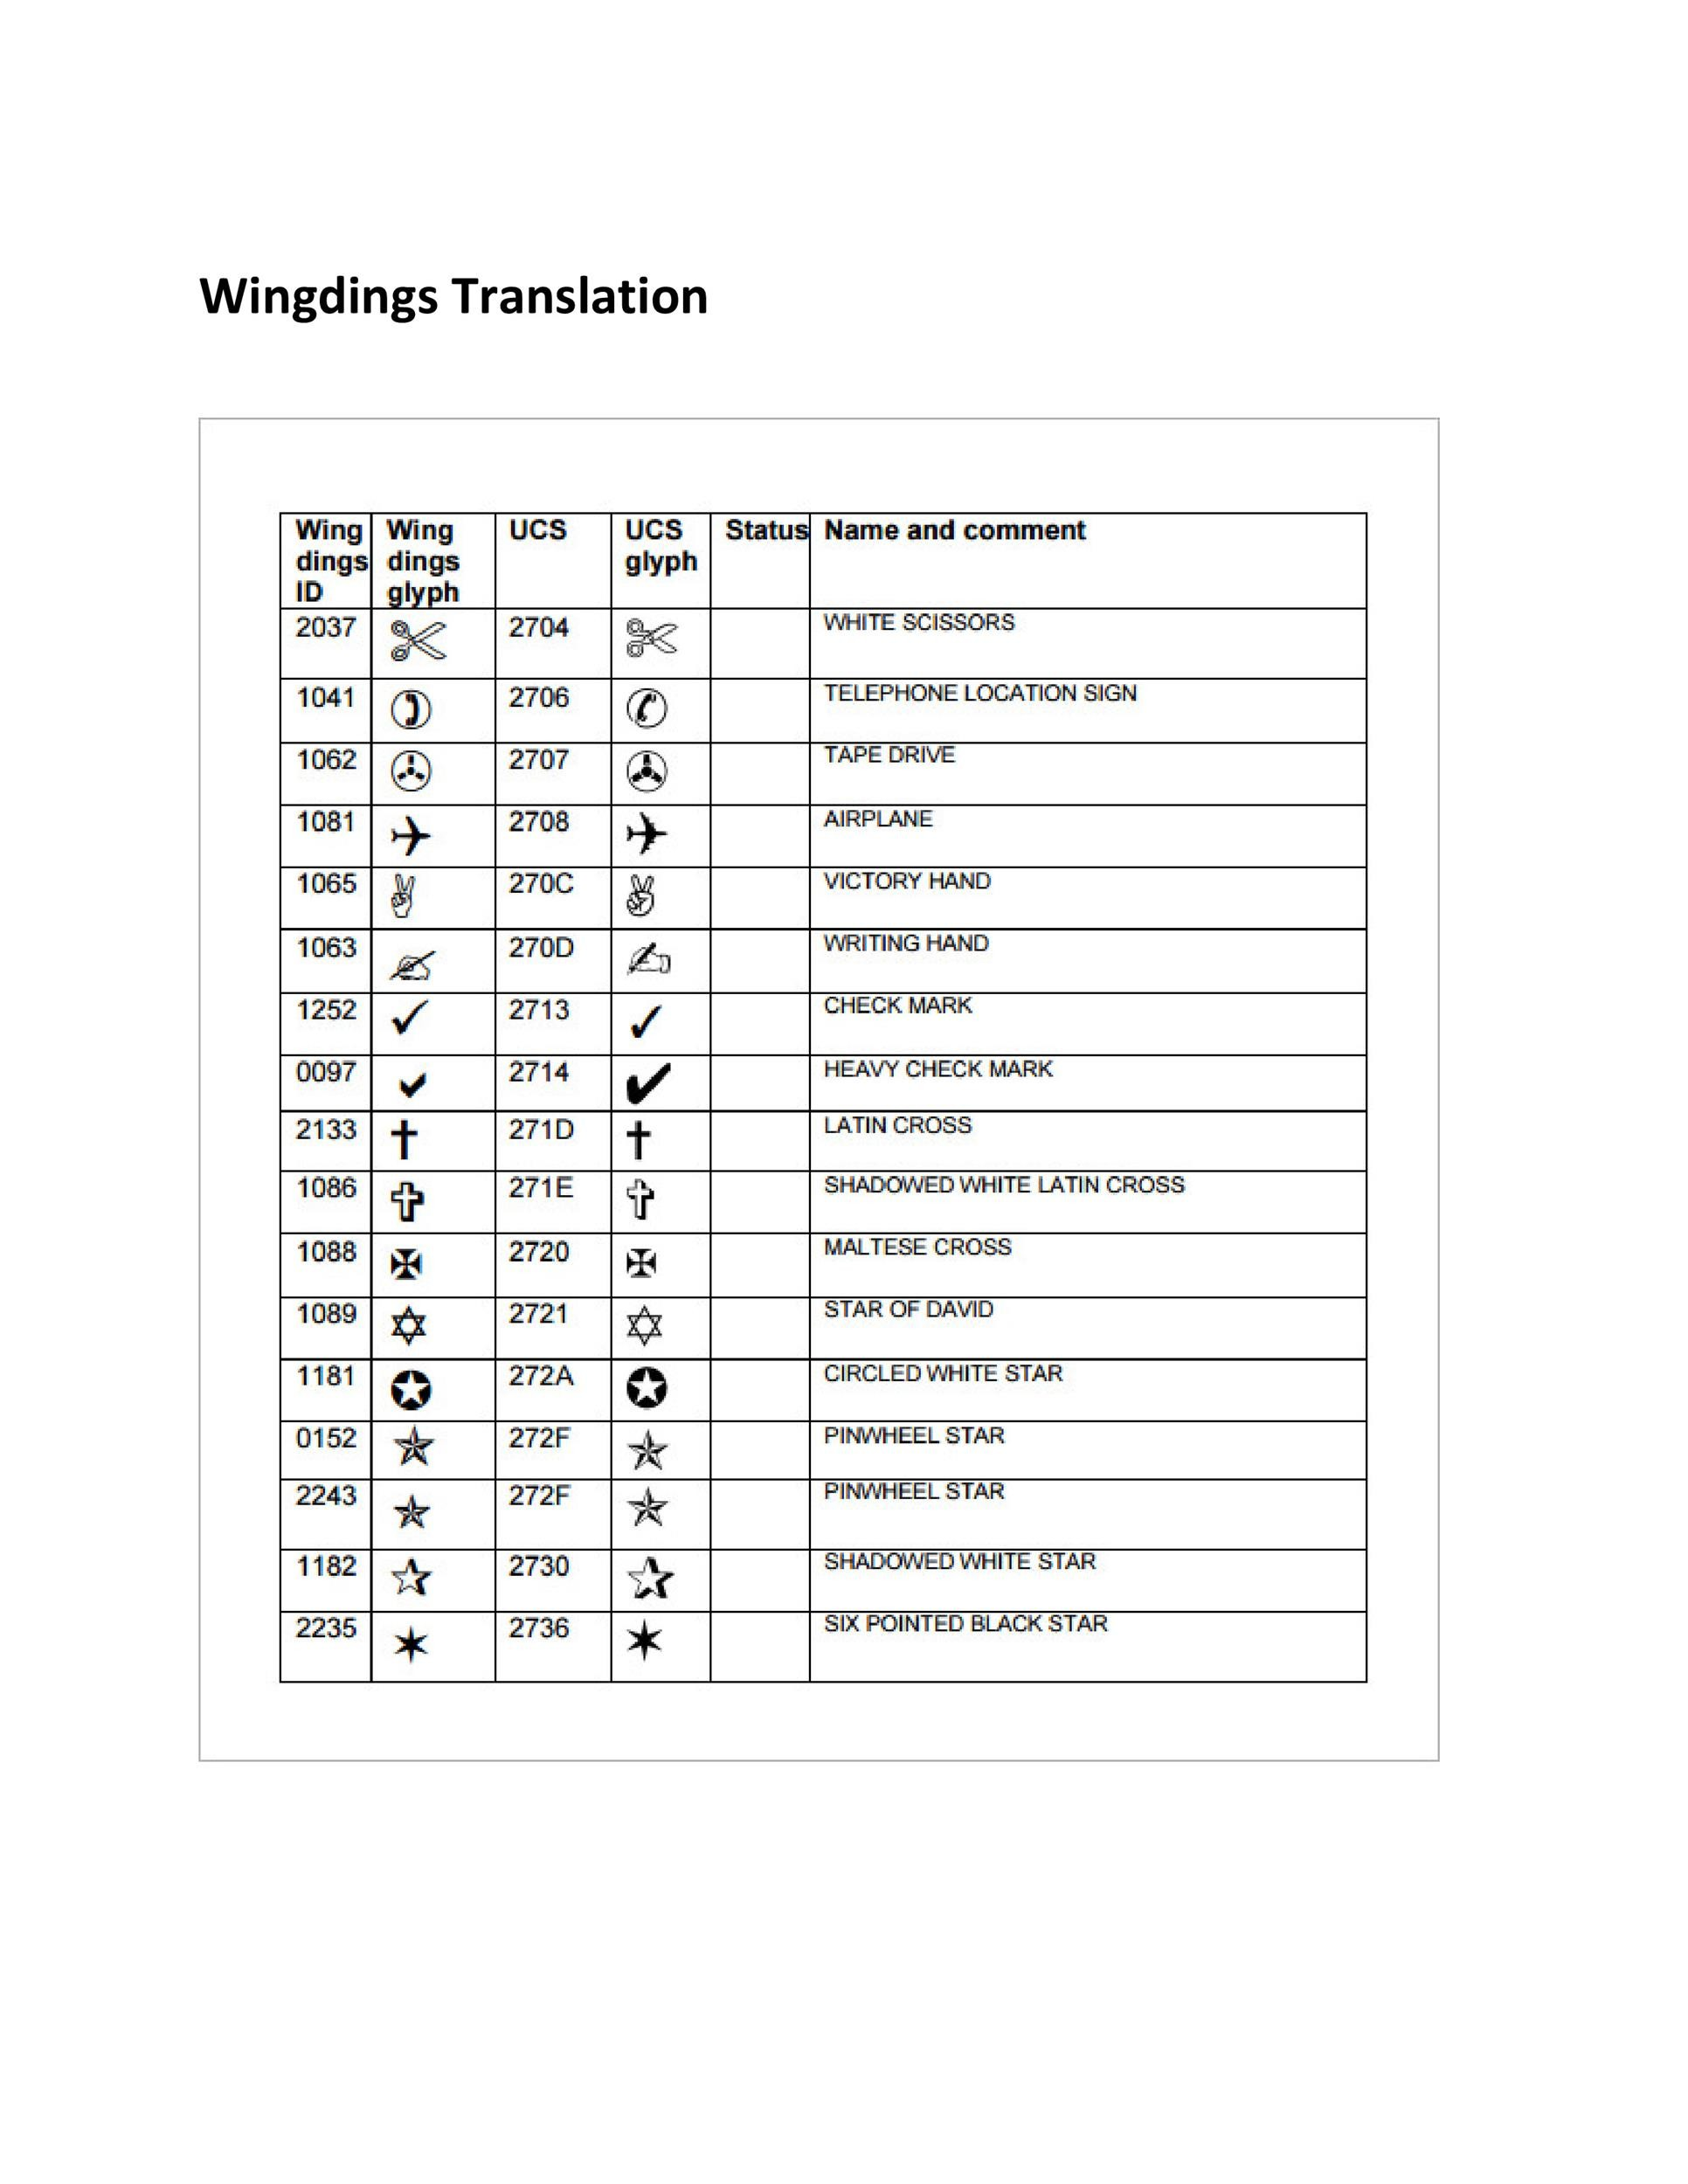 Free wingdings translator template 15